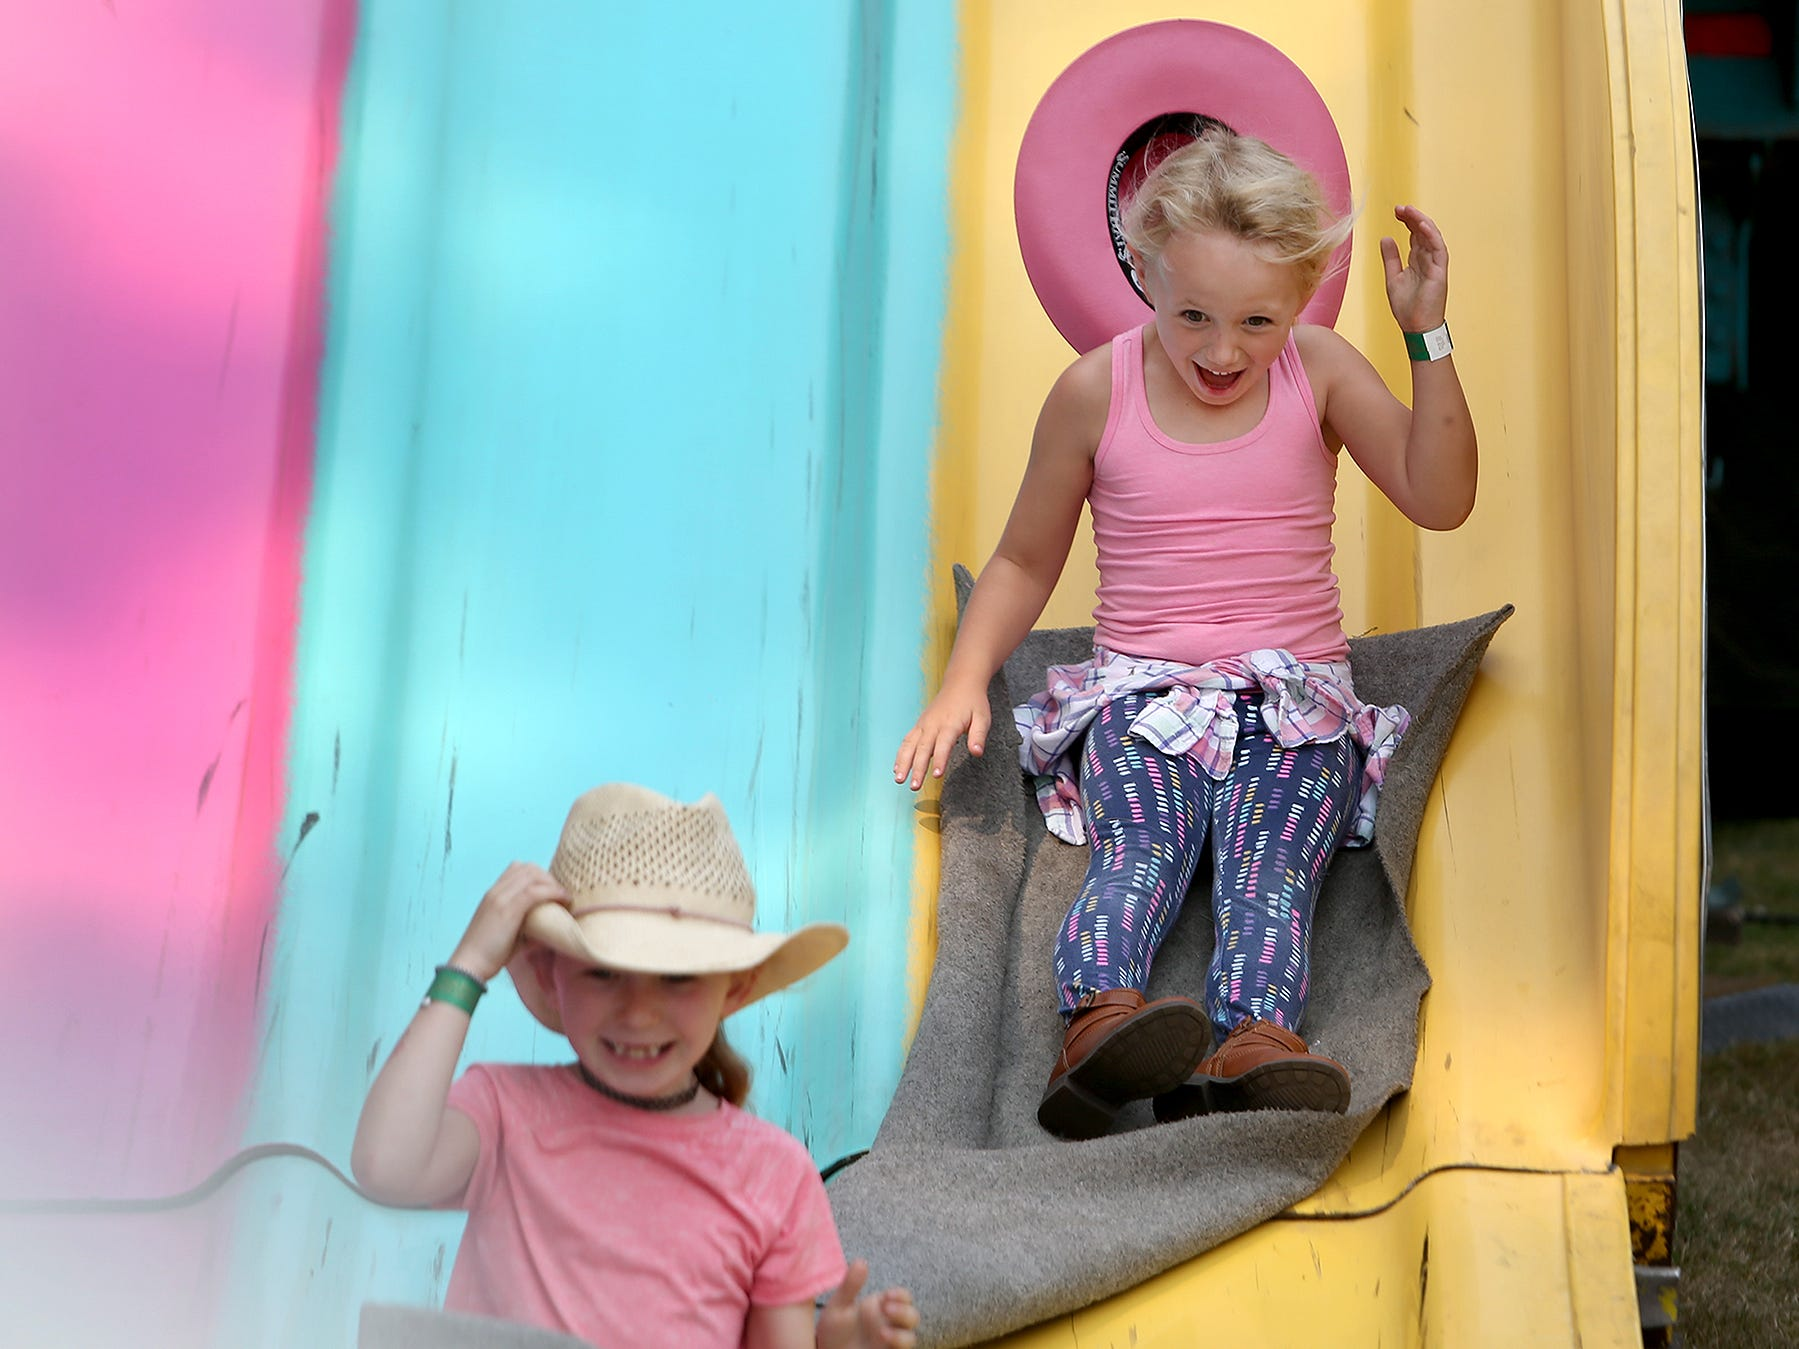 Sammie Shields, 6, of Bremerton, loses her cowgirl hat going down the slide at the Kitsap County Fair & Stampede opening day on Wednesday, August 22, 2018.On the left is her friend Della Russell, 7, of Bremerton.